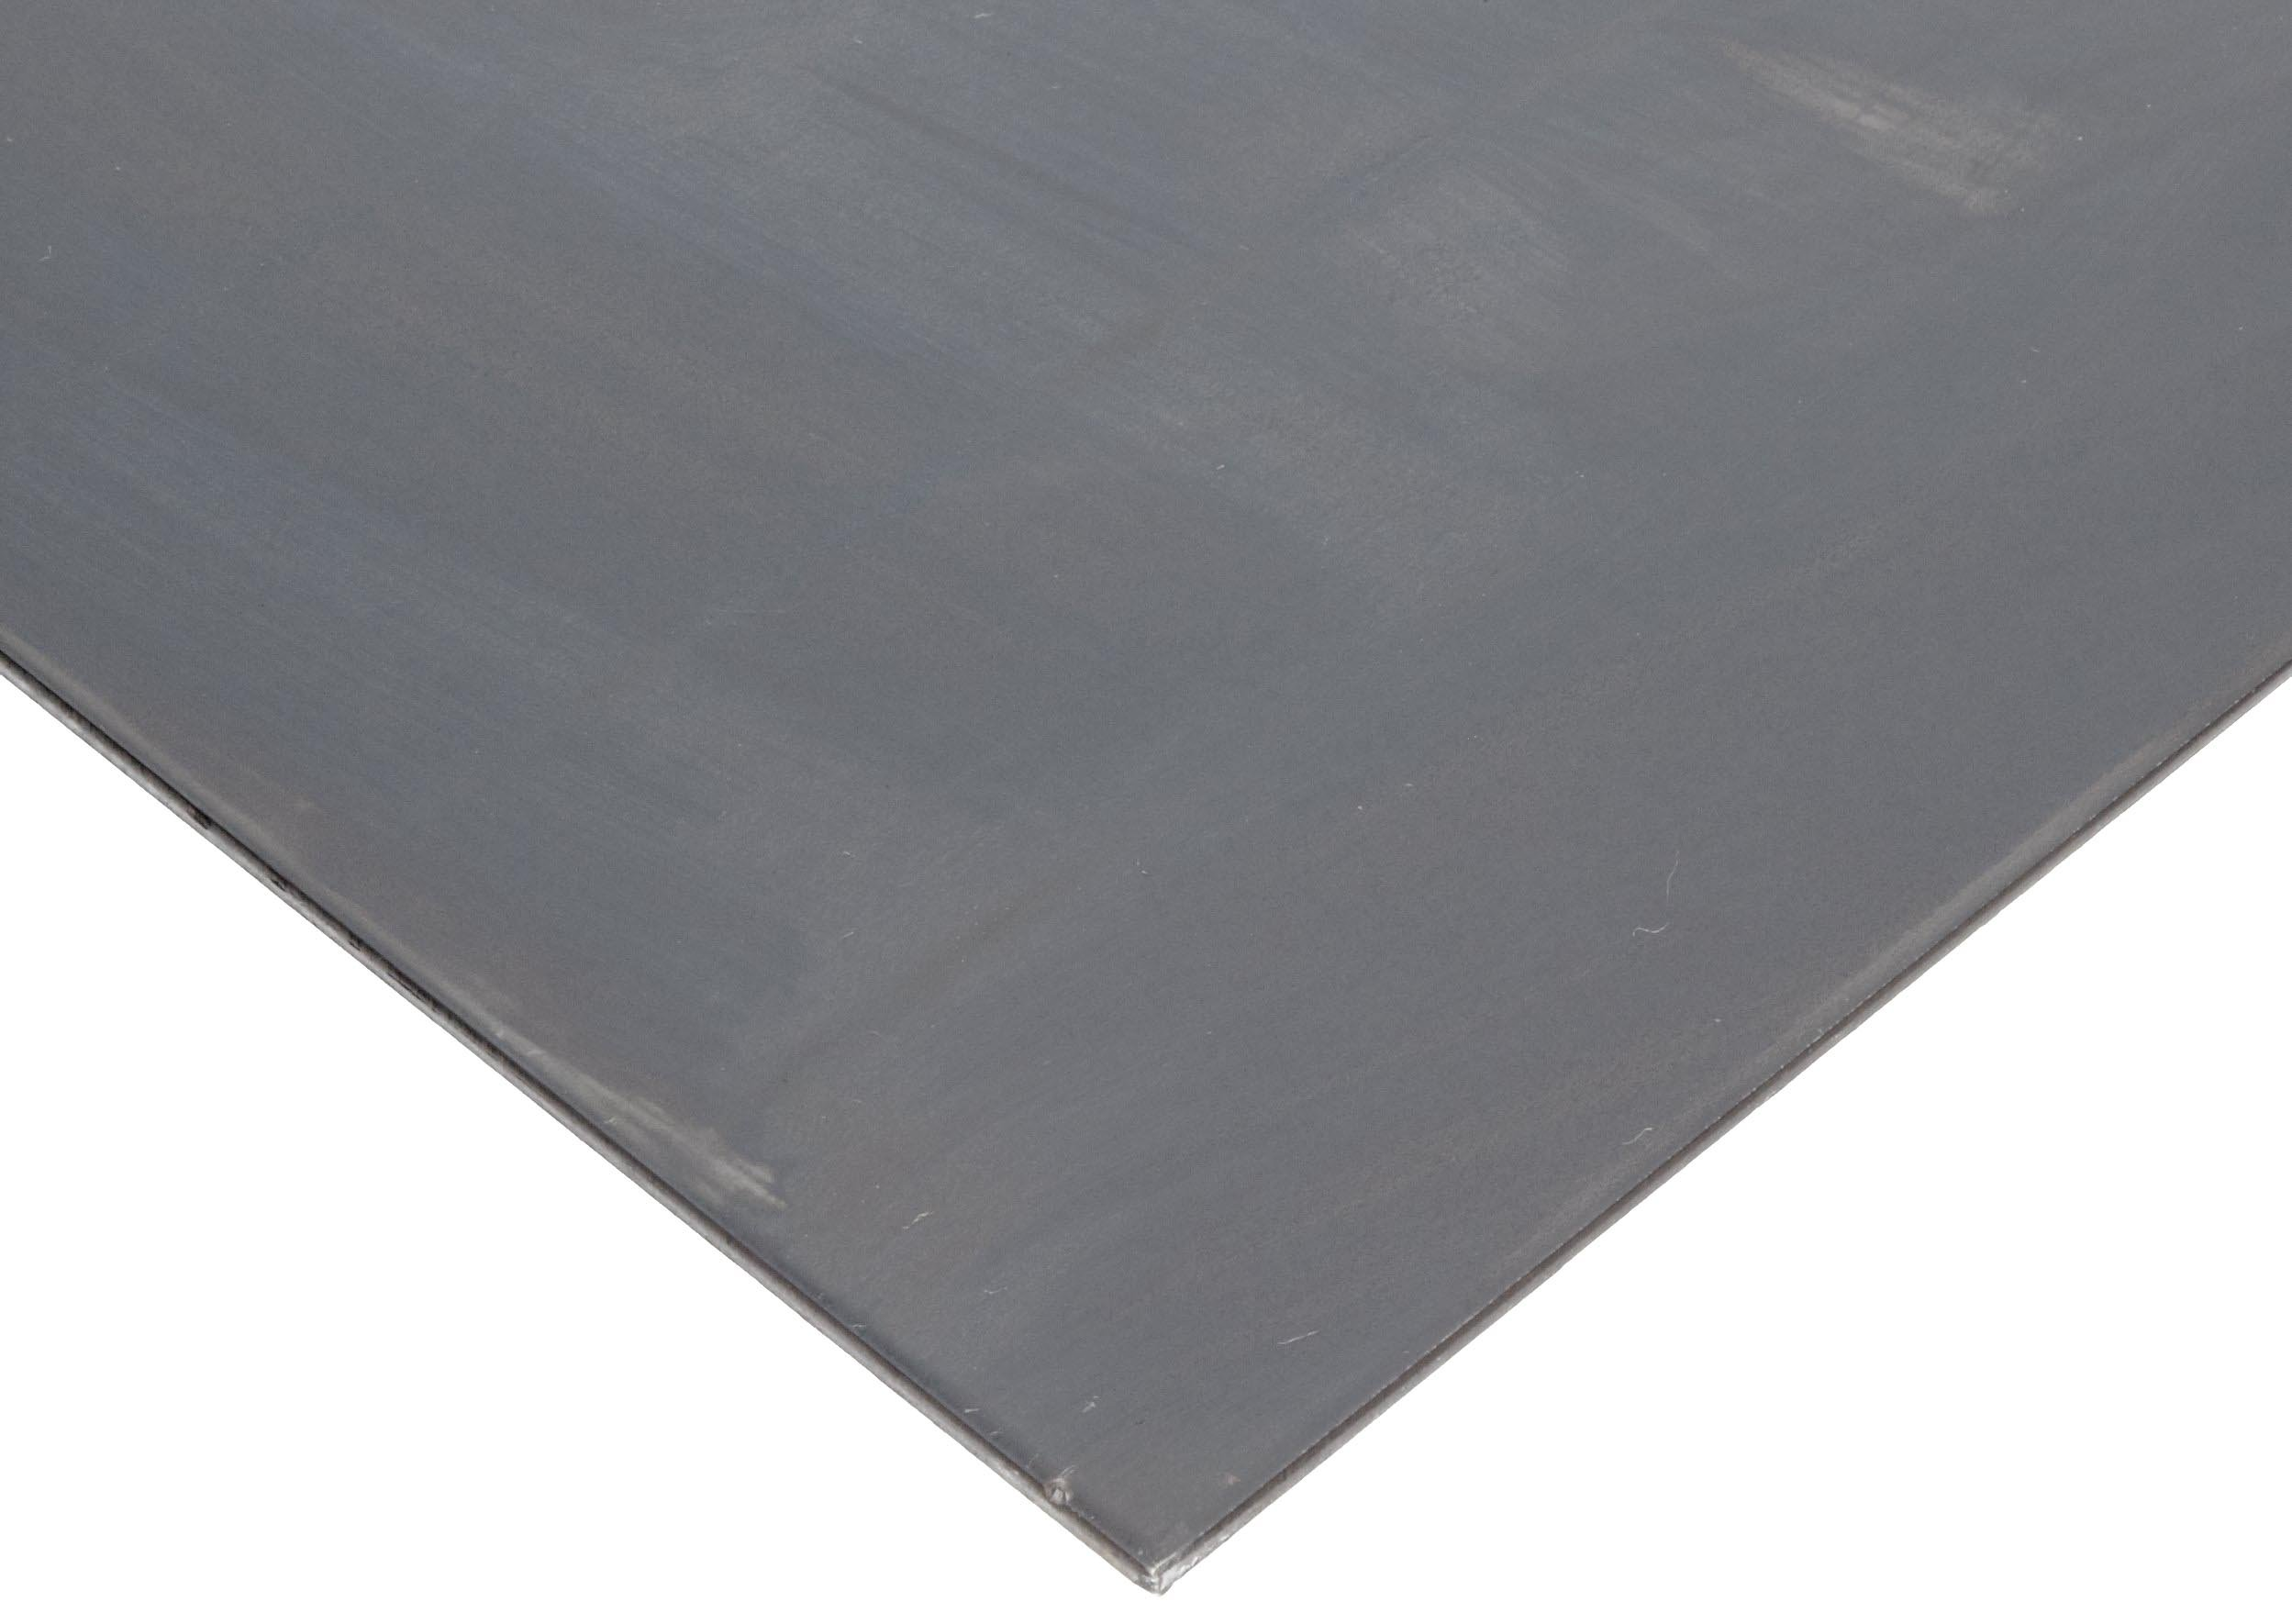 """A36 Steel Sheet, Unpolished (Mill) Finish, Hot Rolled, ASTM A36, 0.06"""" Thickness, 24"""" Width, 36"""" Length, 16 Gauge"""